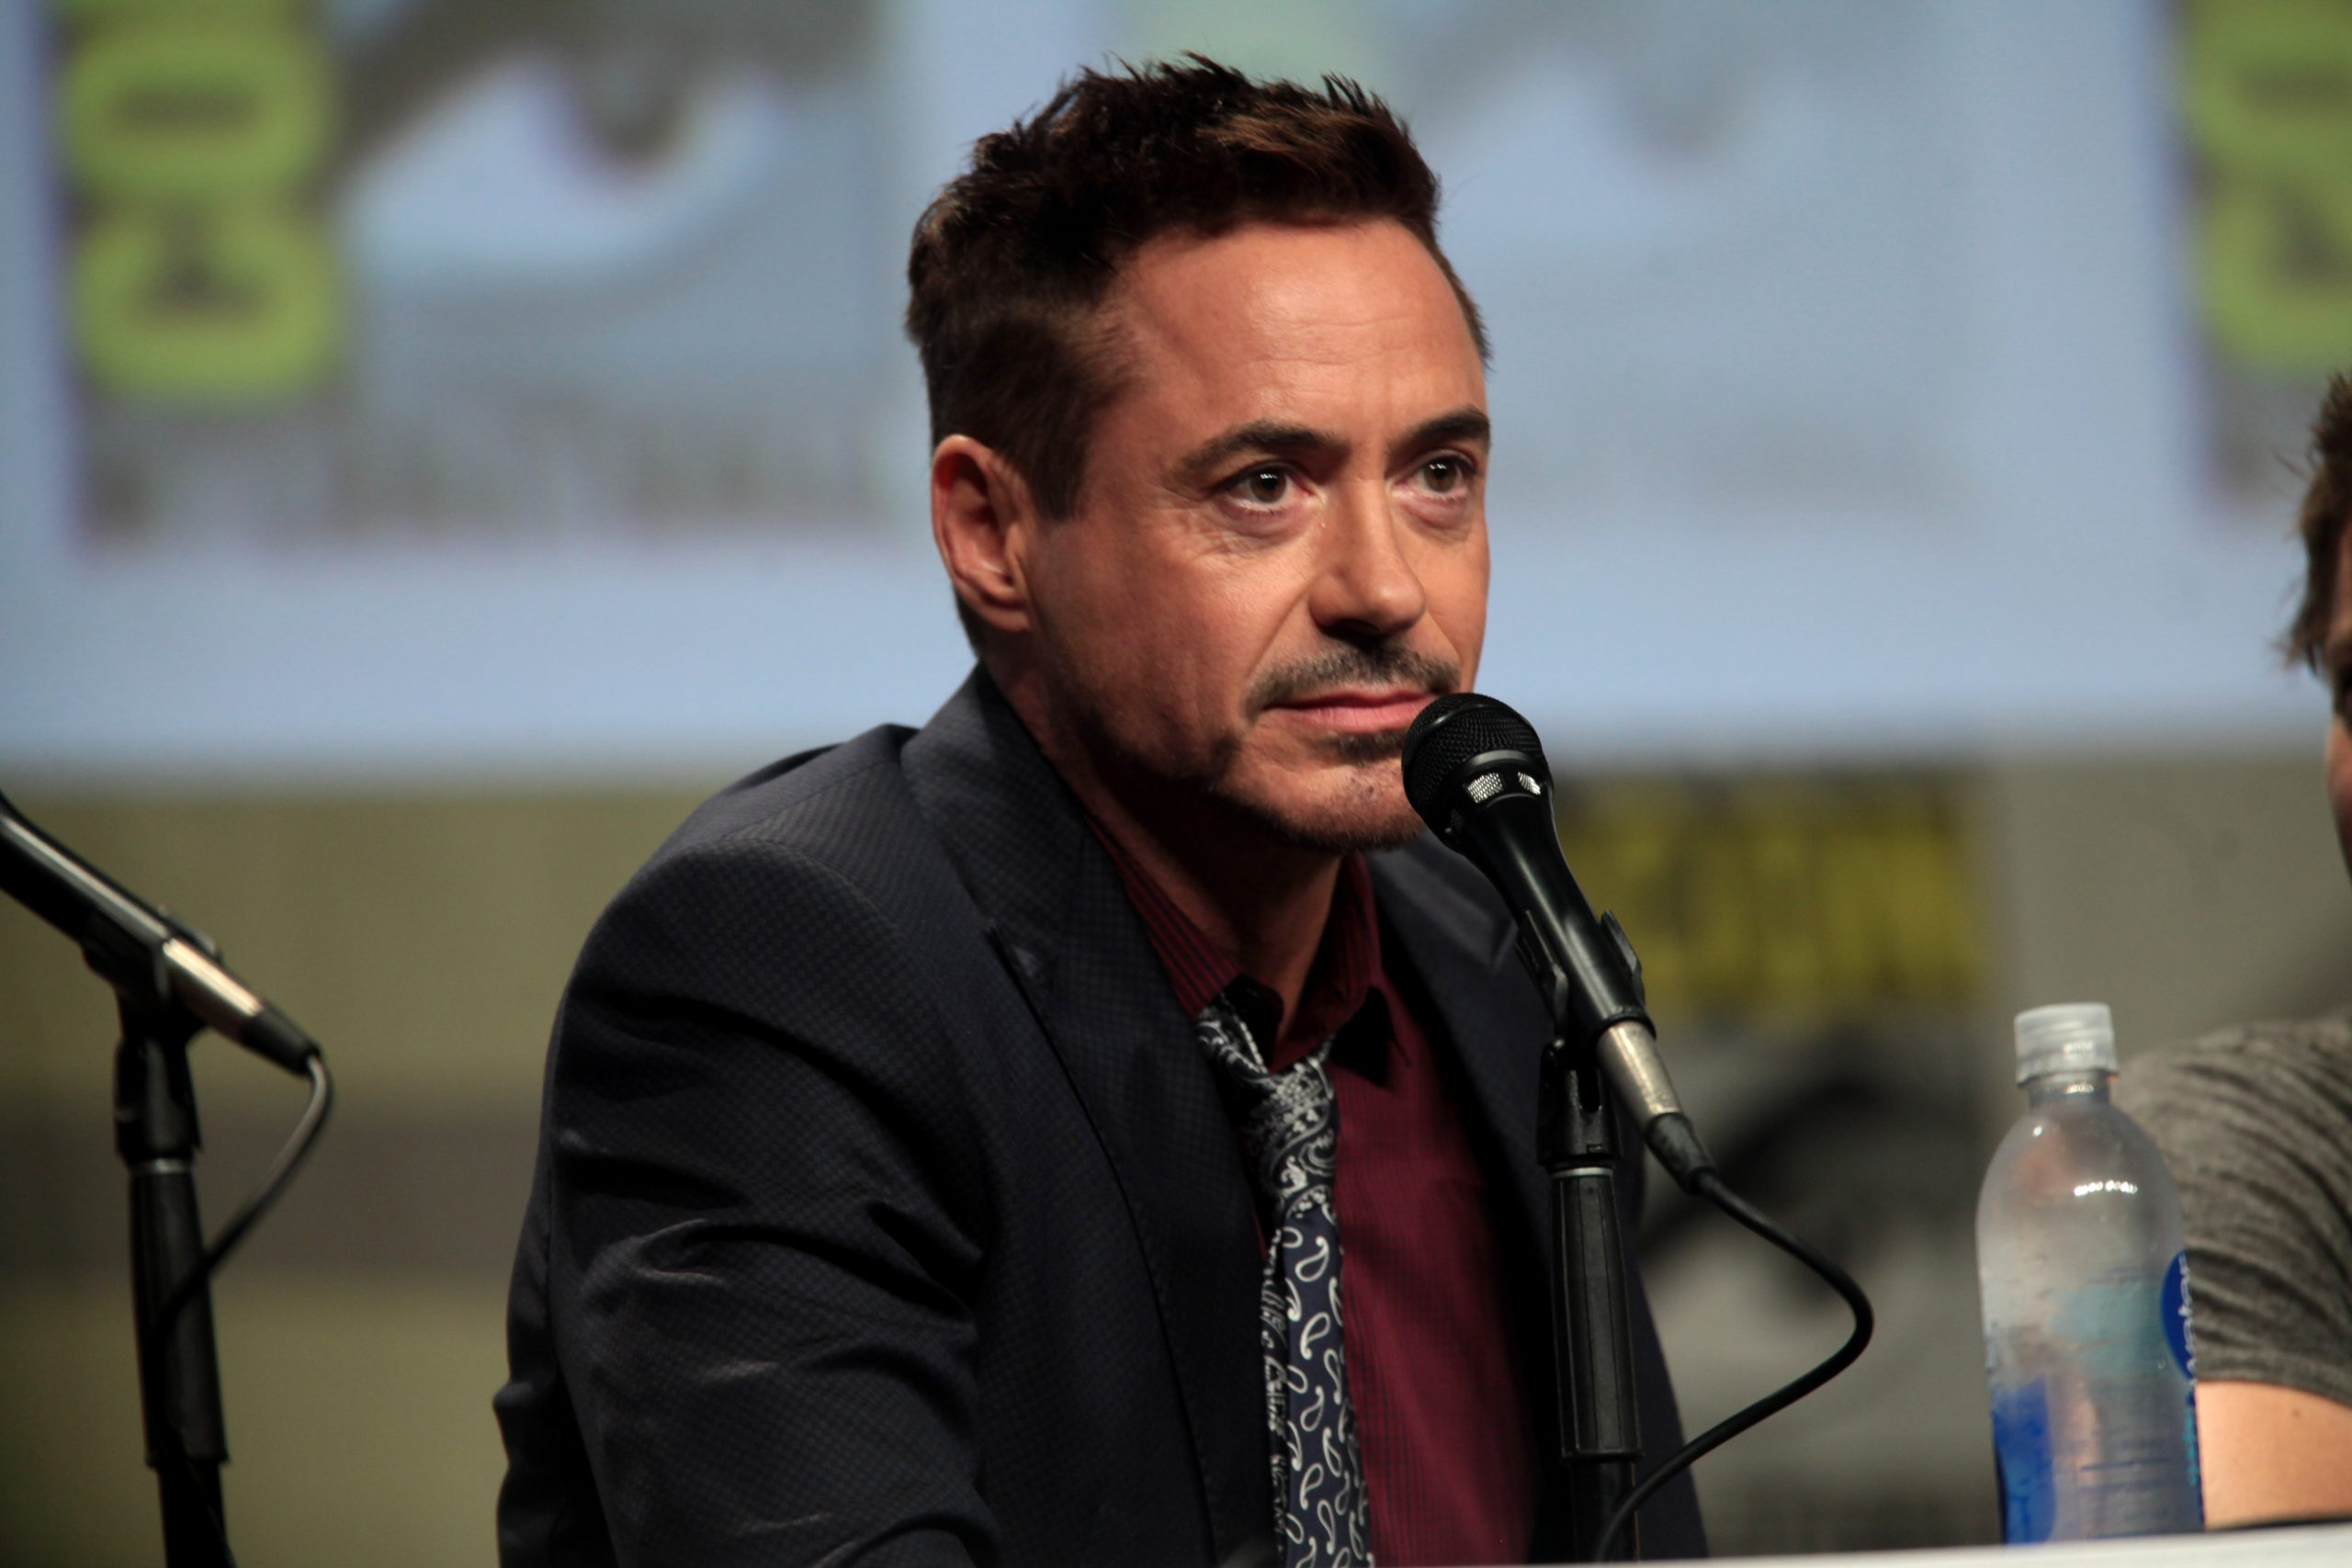 Robert Downey Jr. to star in HBO's new original series 'The Sympathizer'